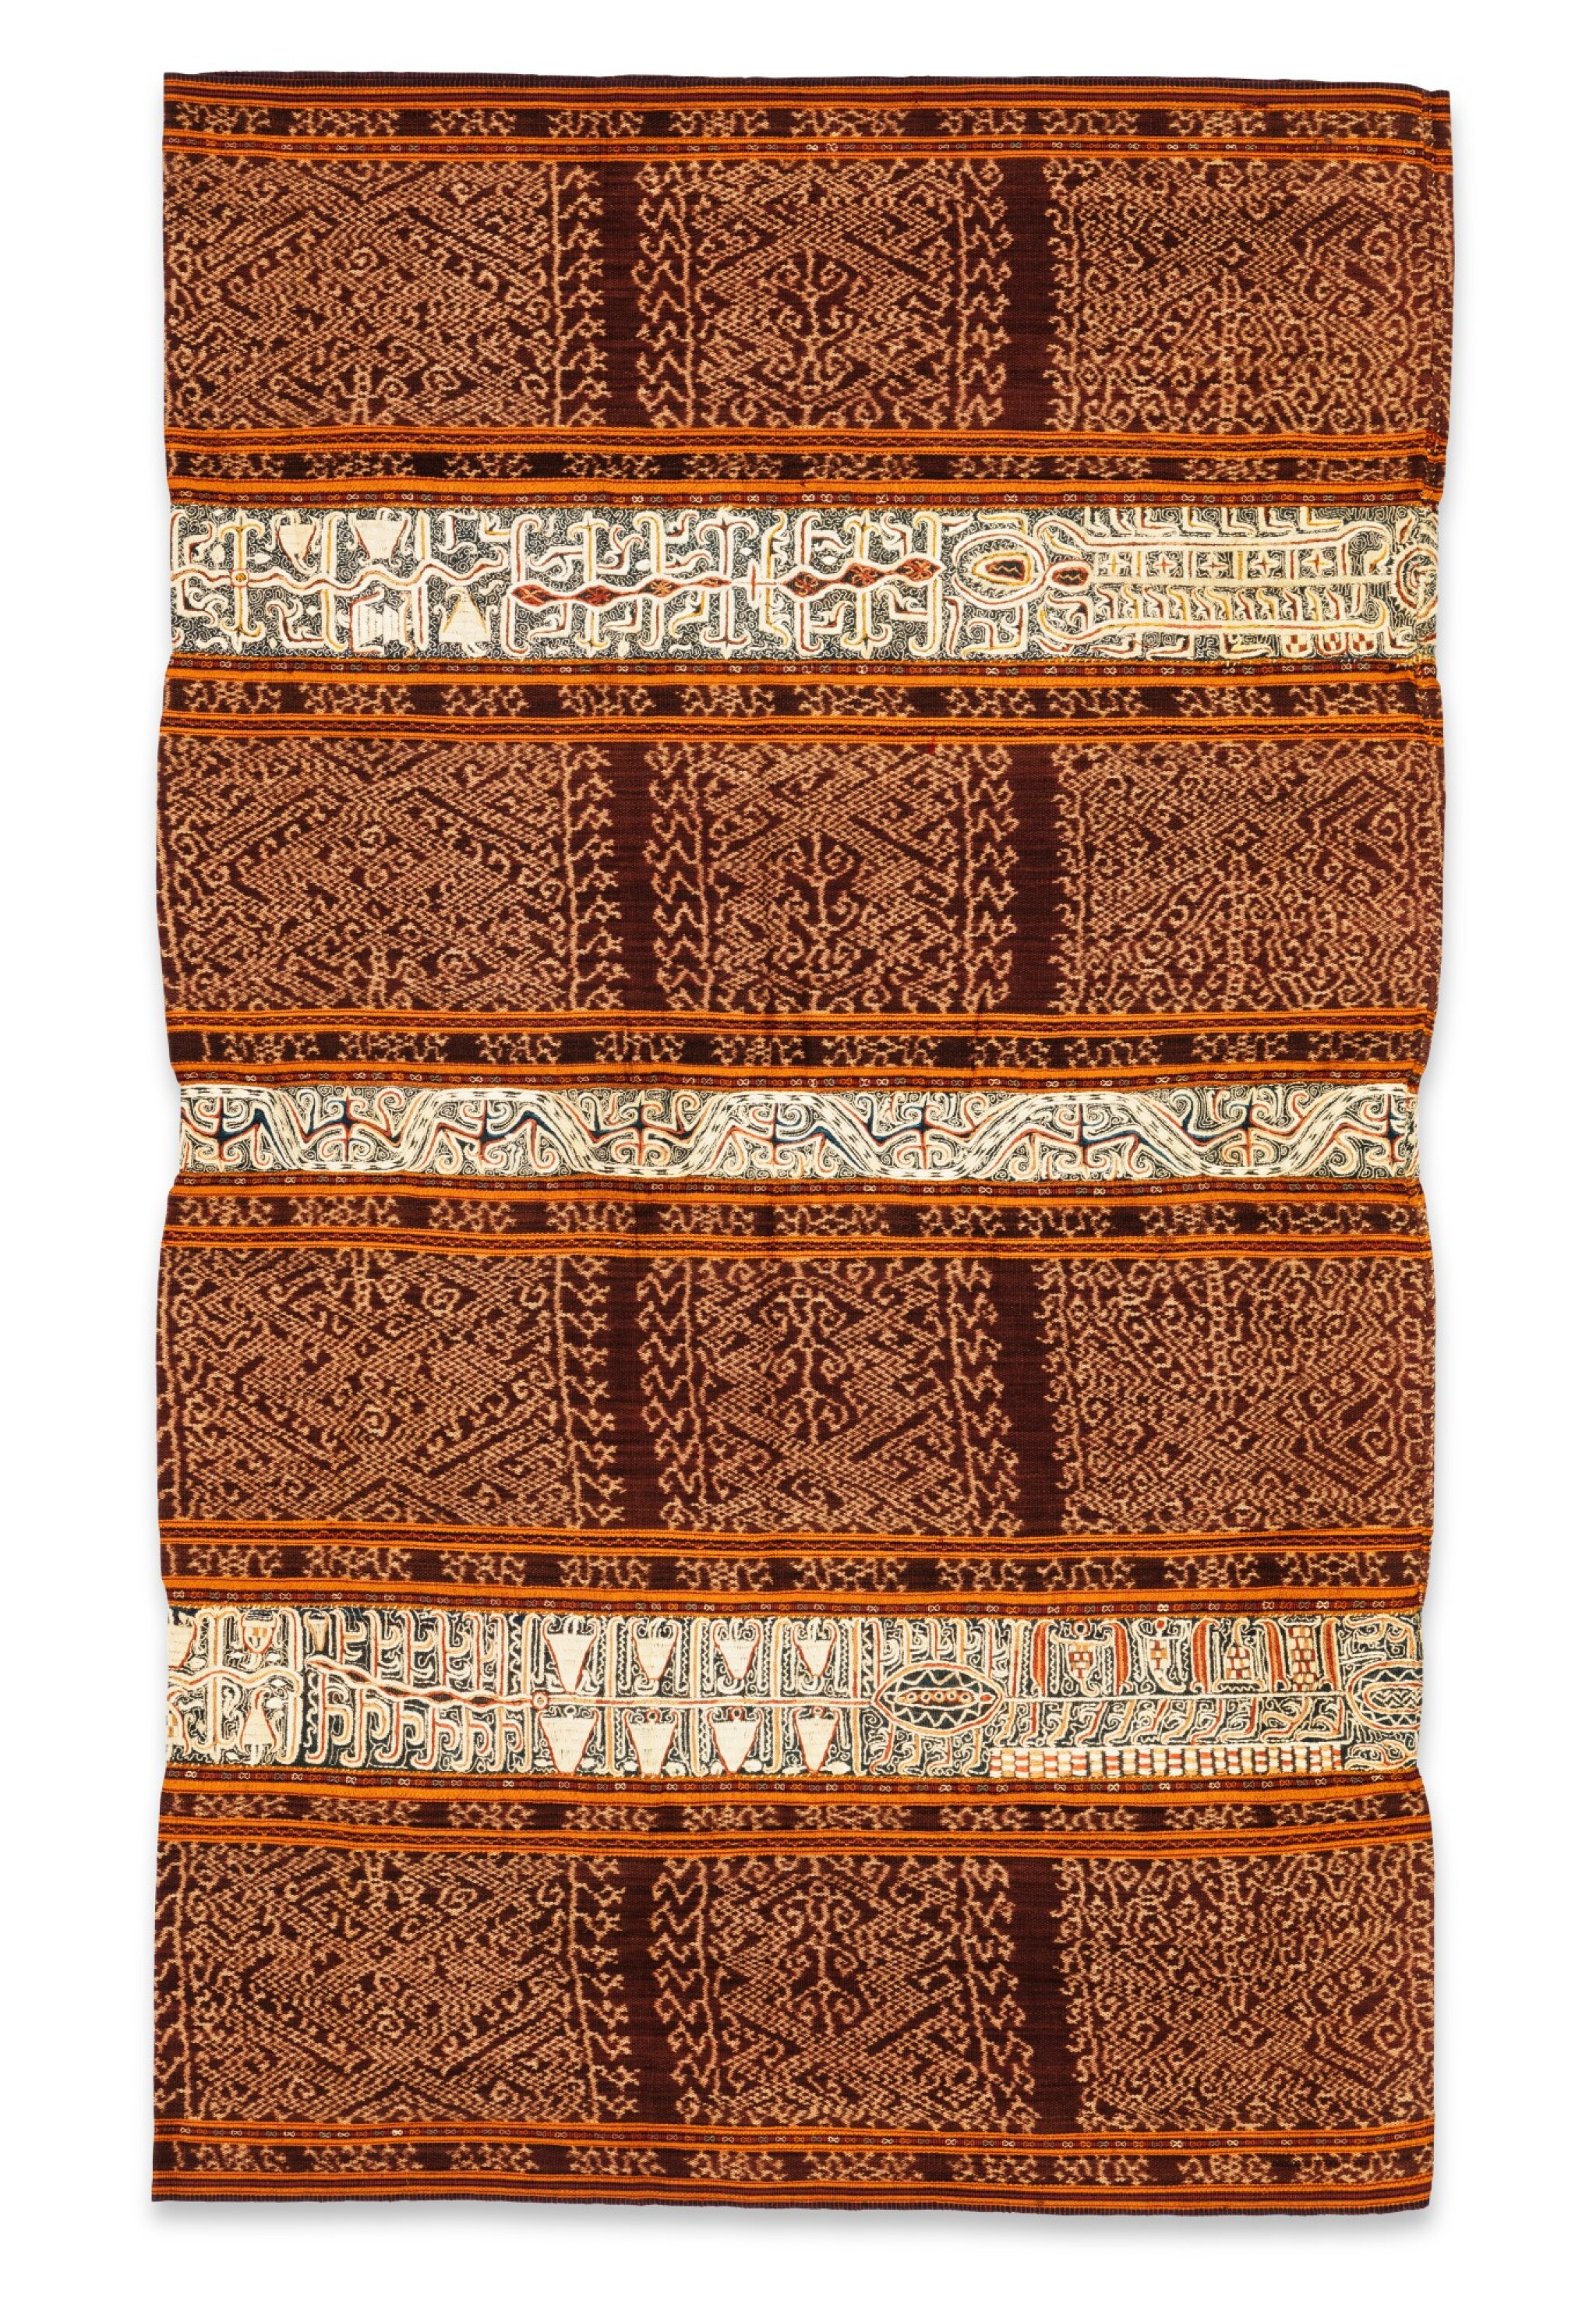 View full screen - View 1 of Lot 34. Jupe de femme tapis, Lampung, Sumatra, Indonésie, fin du 19e siècle | Woman's wrapper tapis, Lampung, Sumatra, Indonesia, late 1880s.